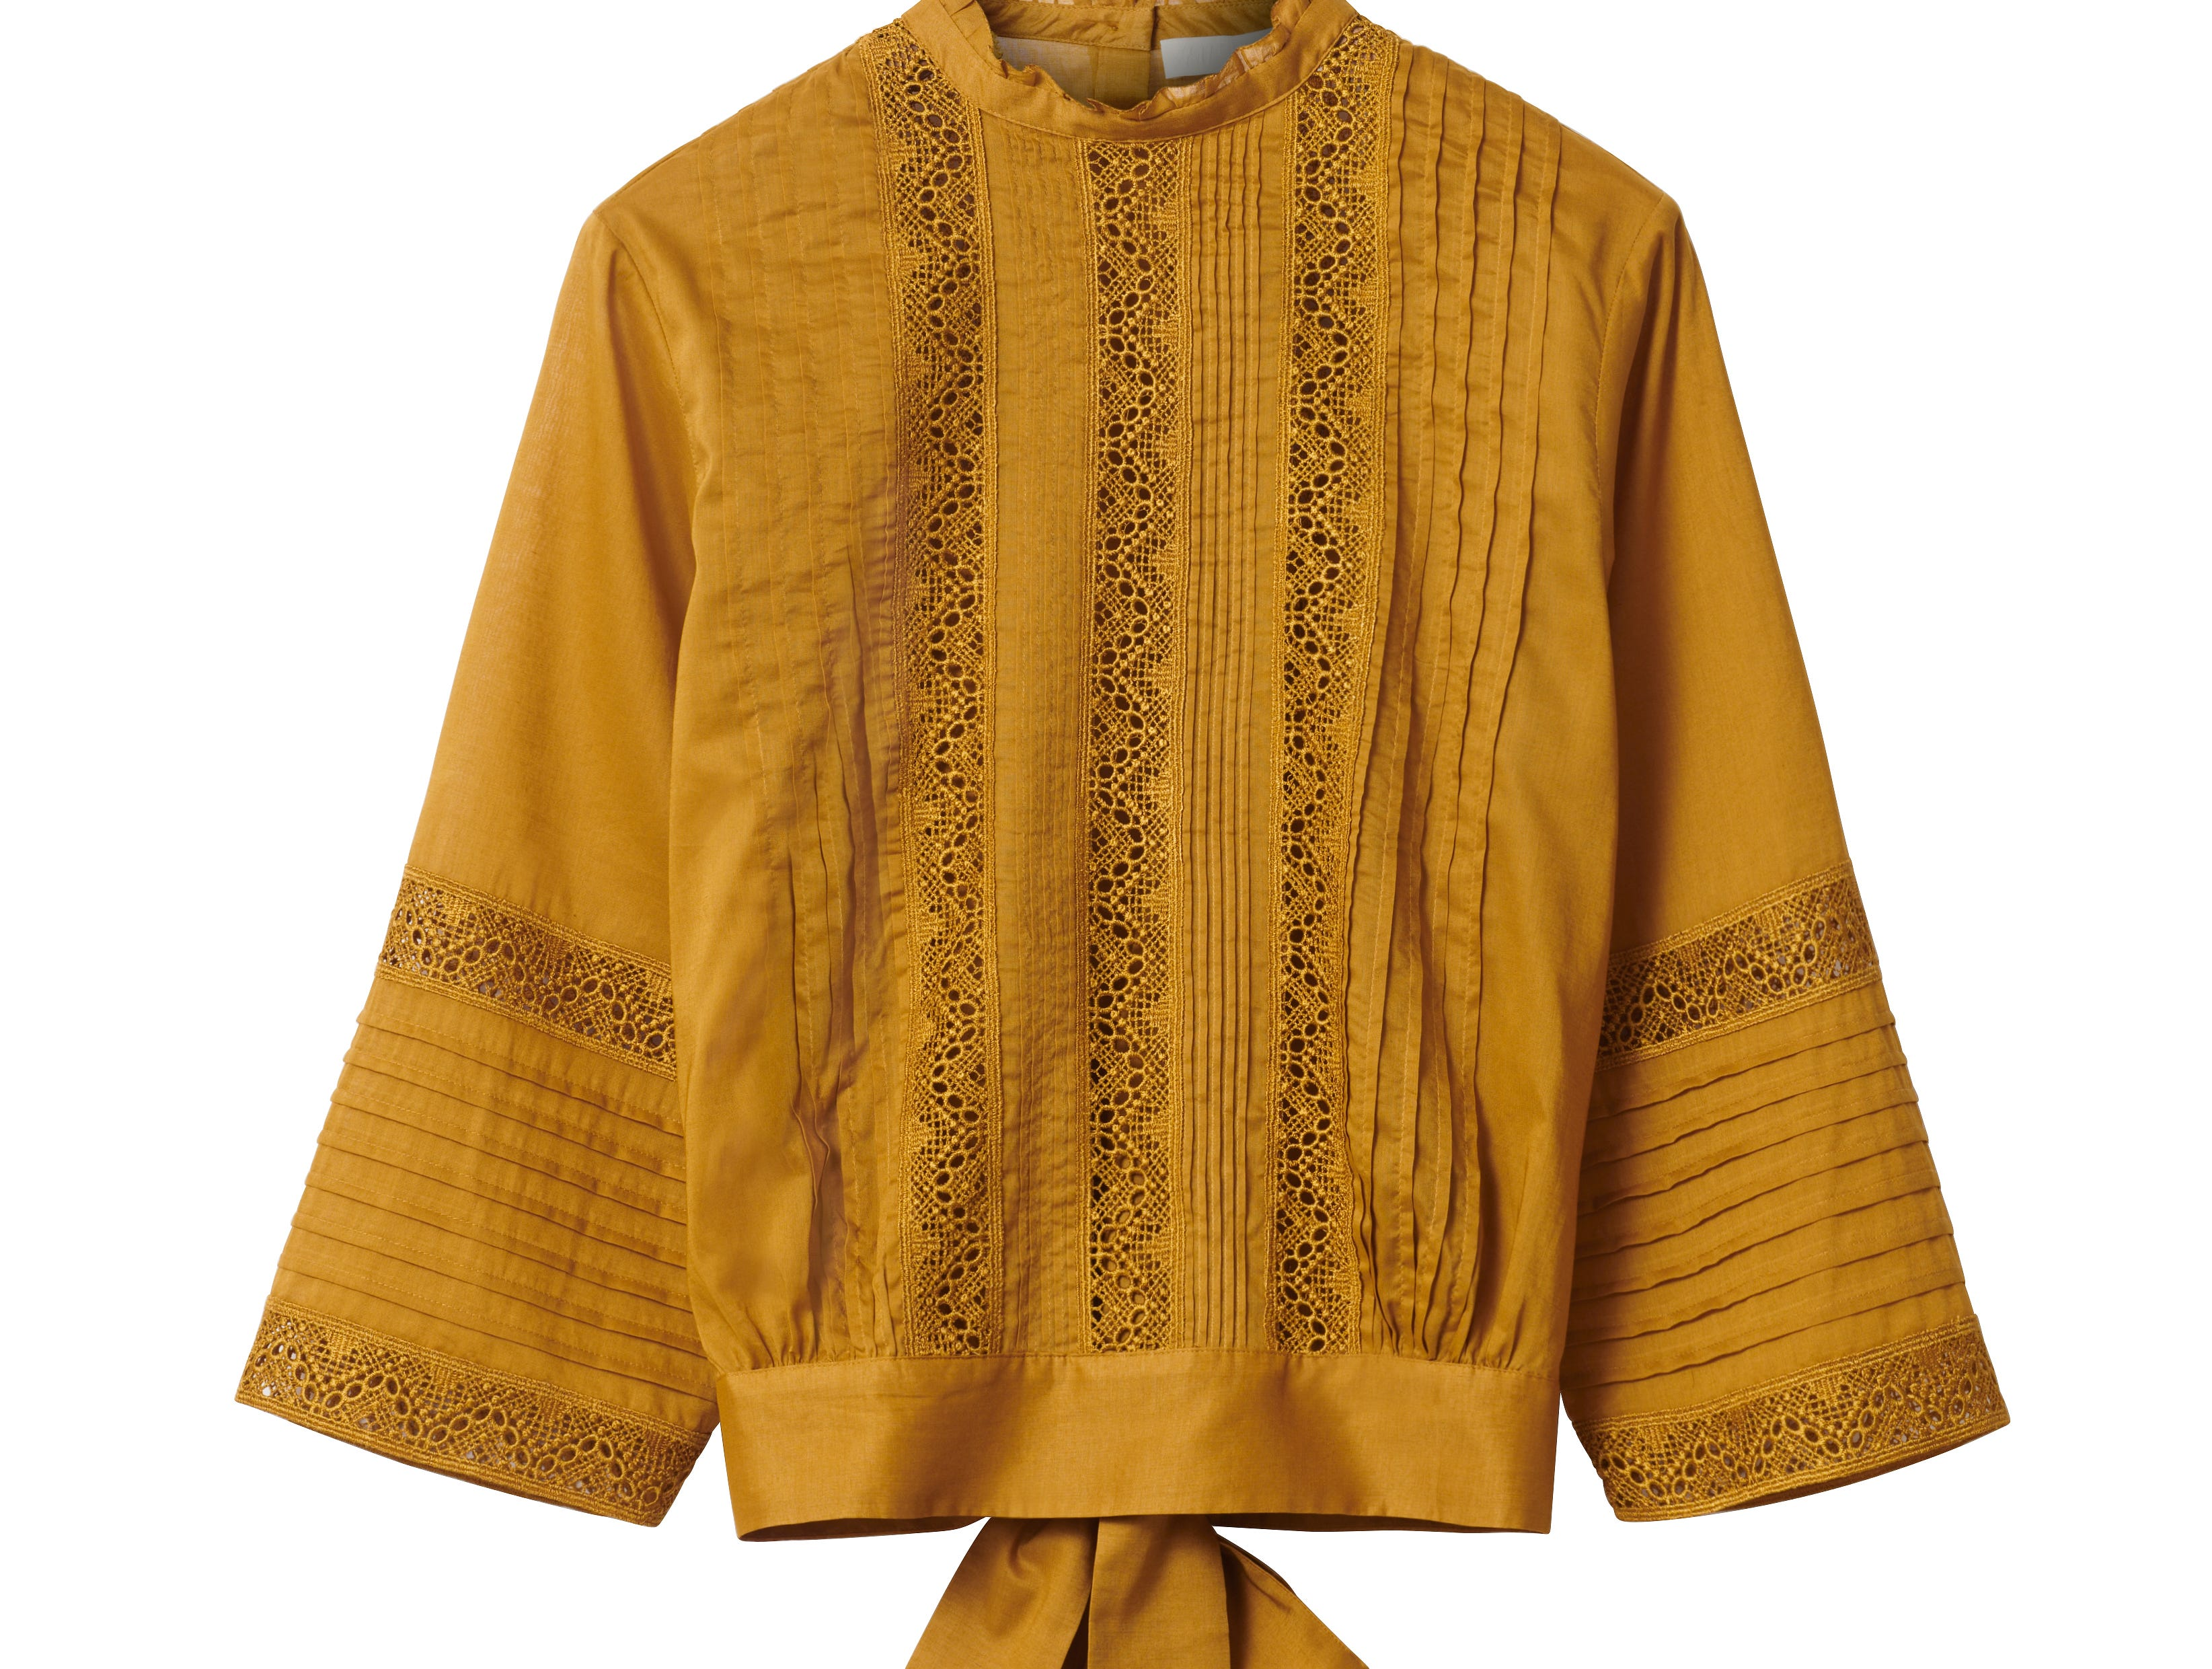 H&M's Conscious Exclusive collection for autumn and winter also features clothing made from organic cotton, such as this blouse priced at $79.99.